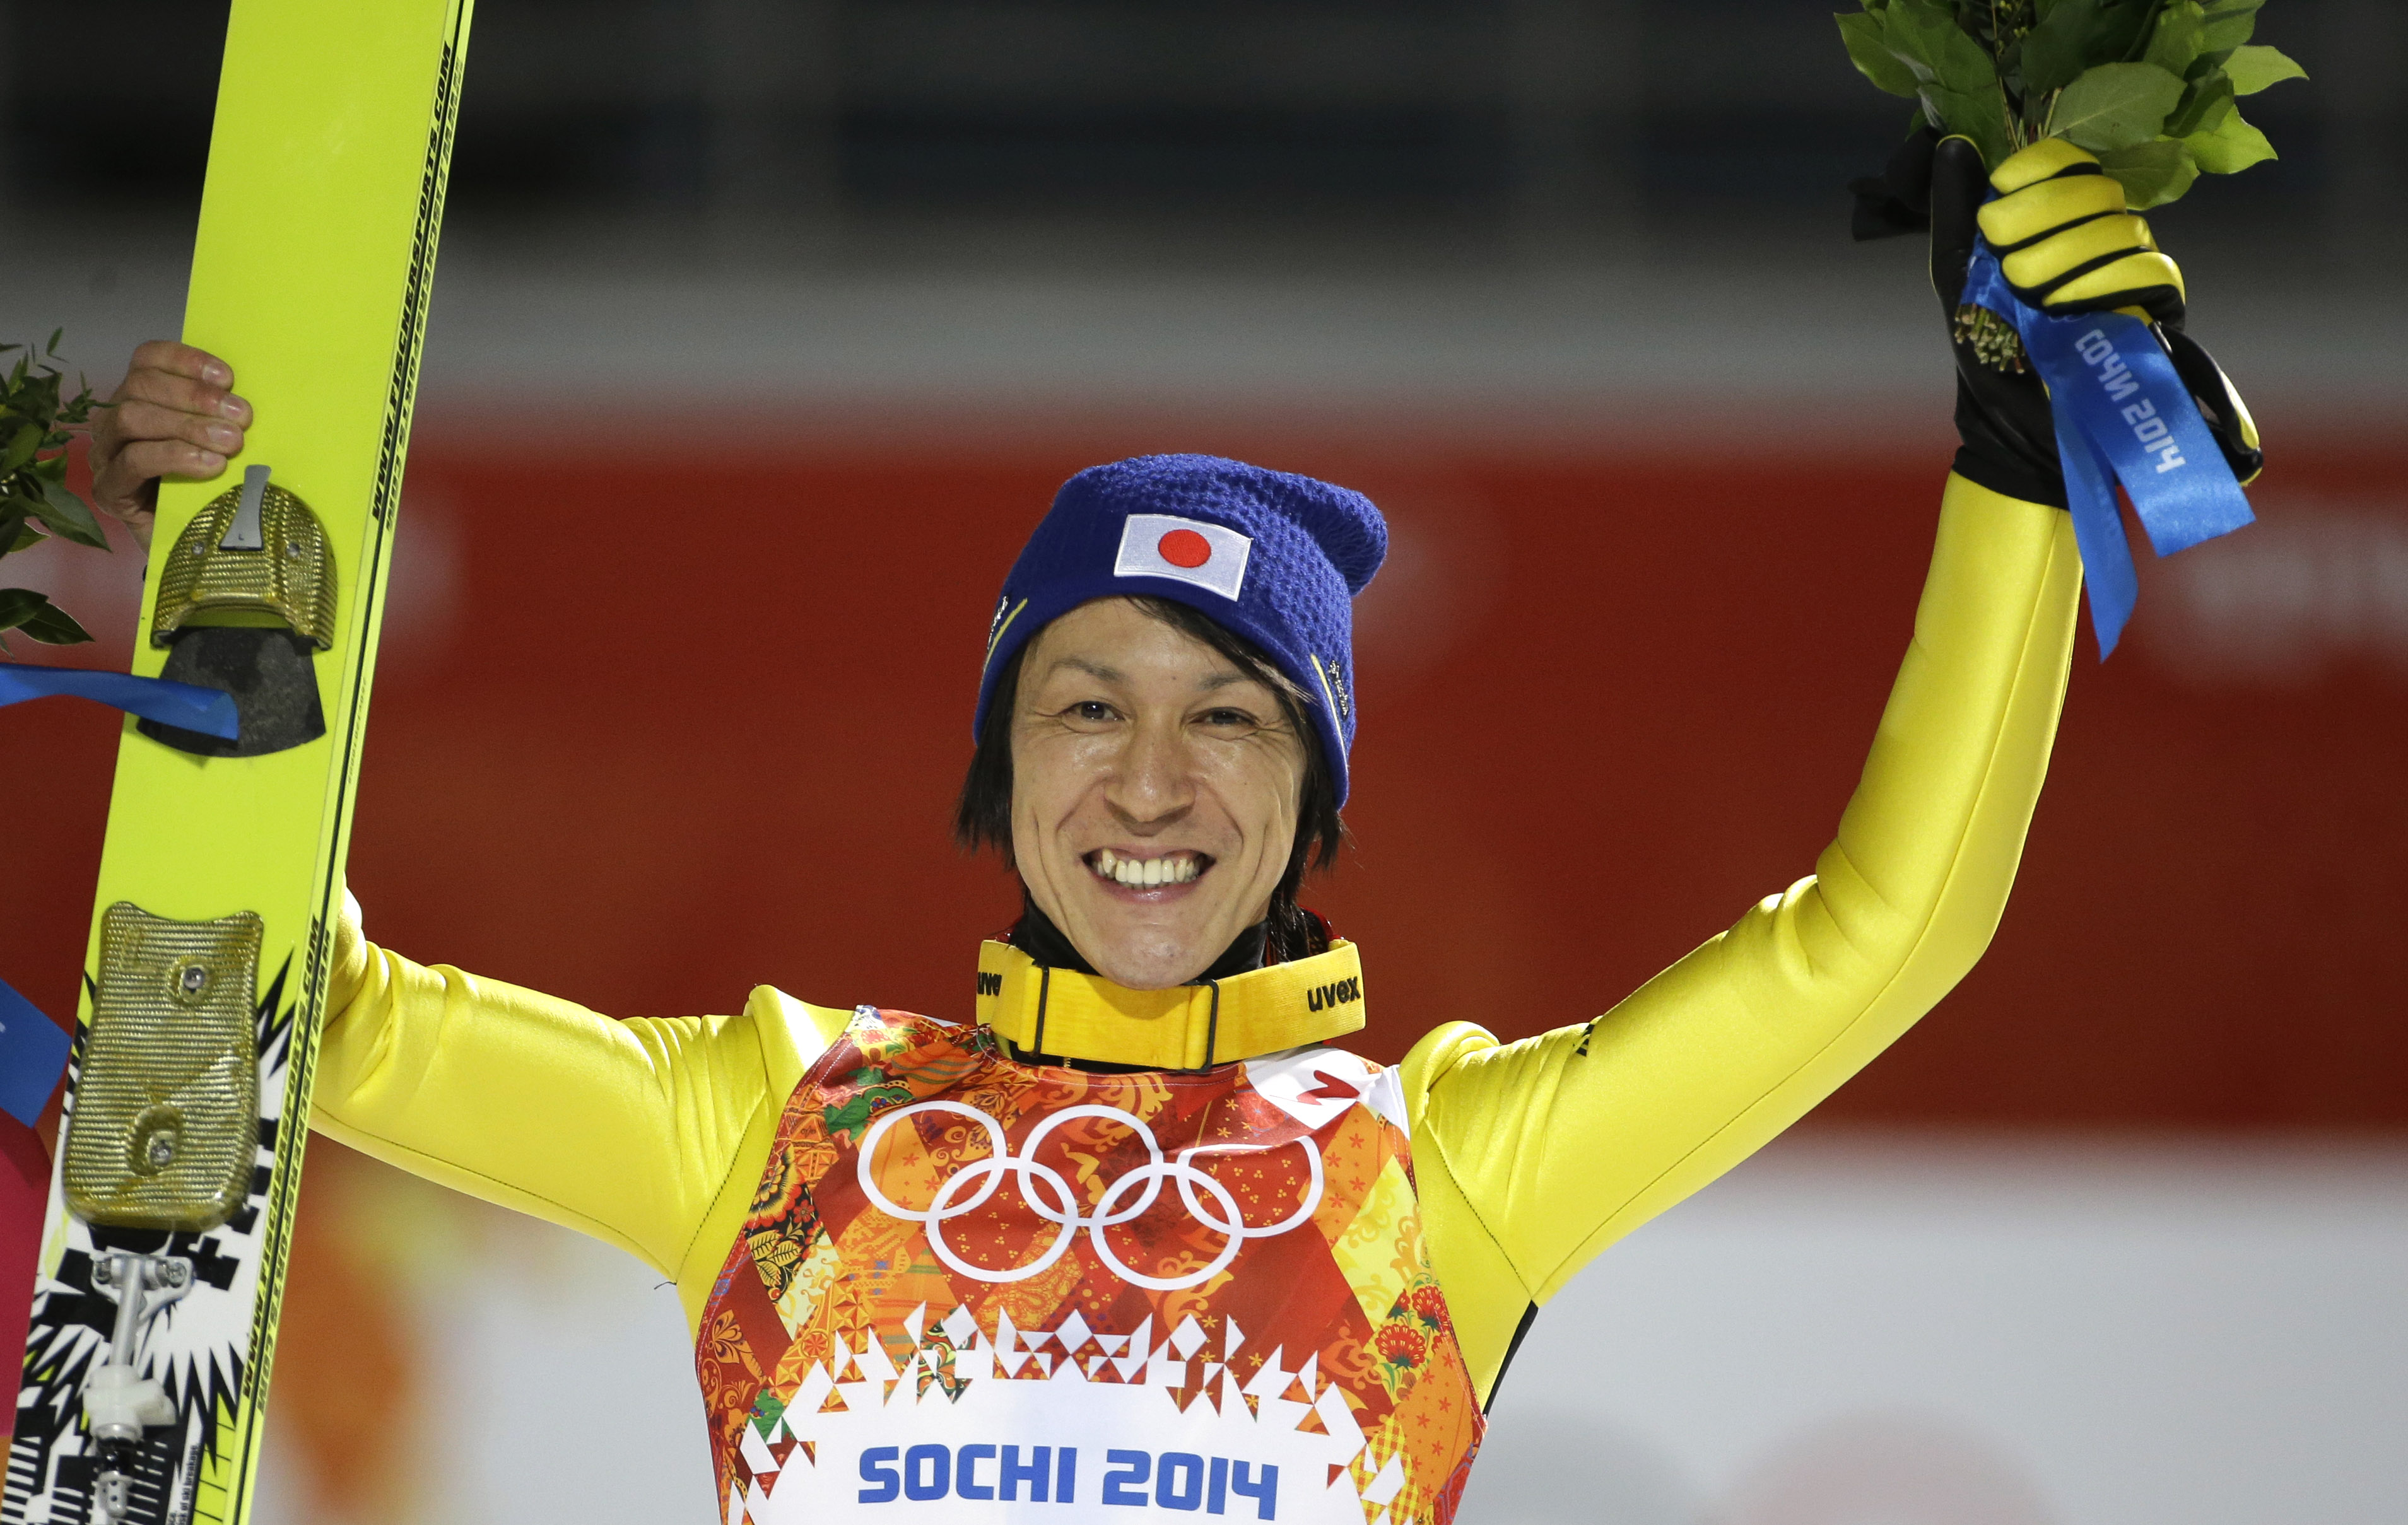 Long wait ends as Kasai takes silver medal in large hill jump | The Japan Times